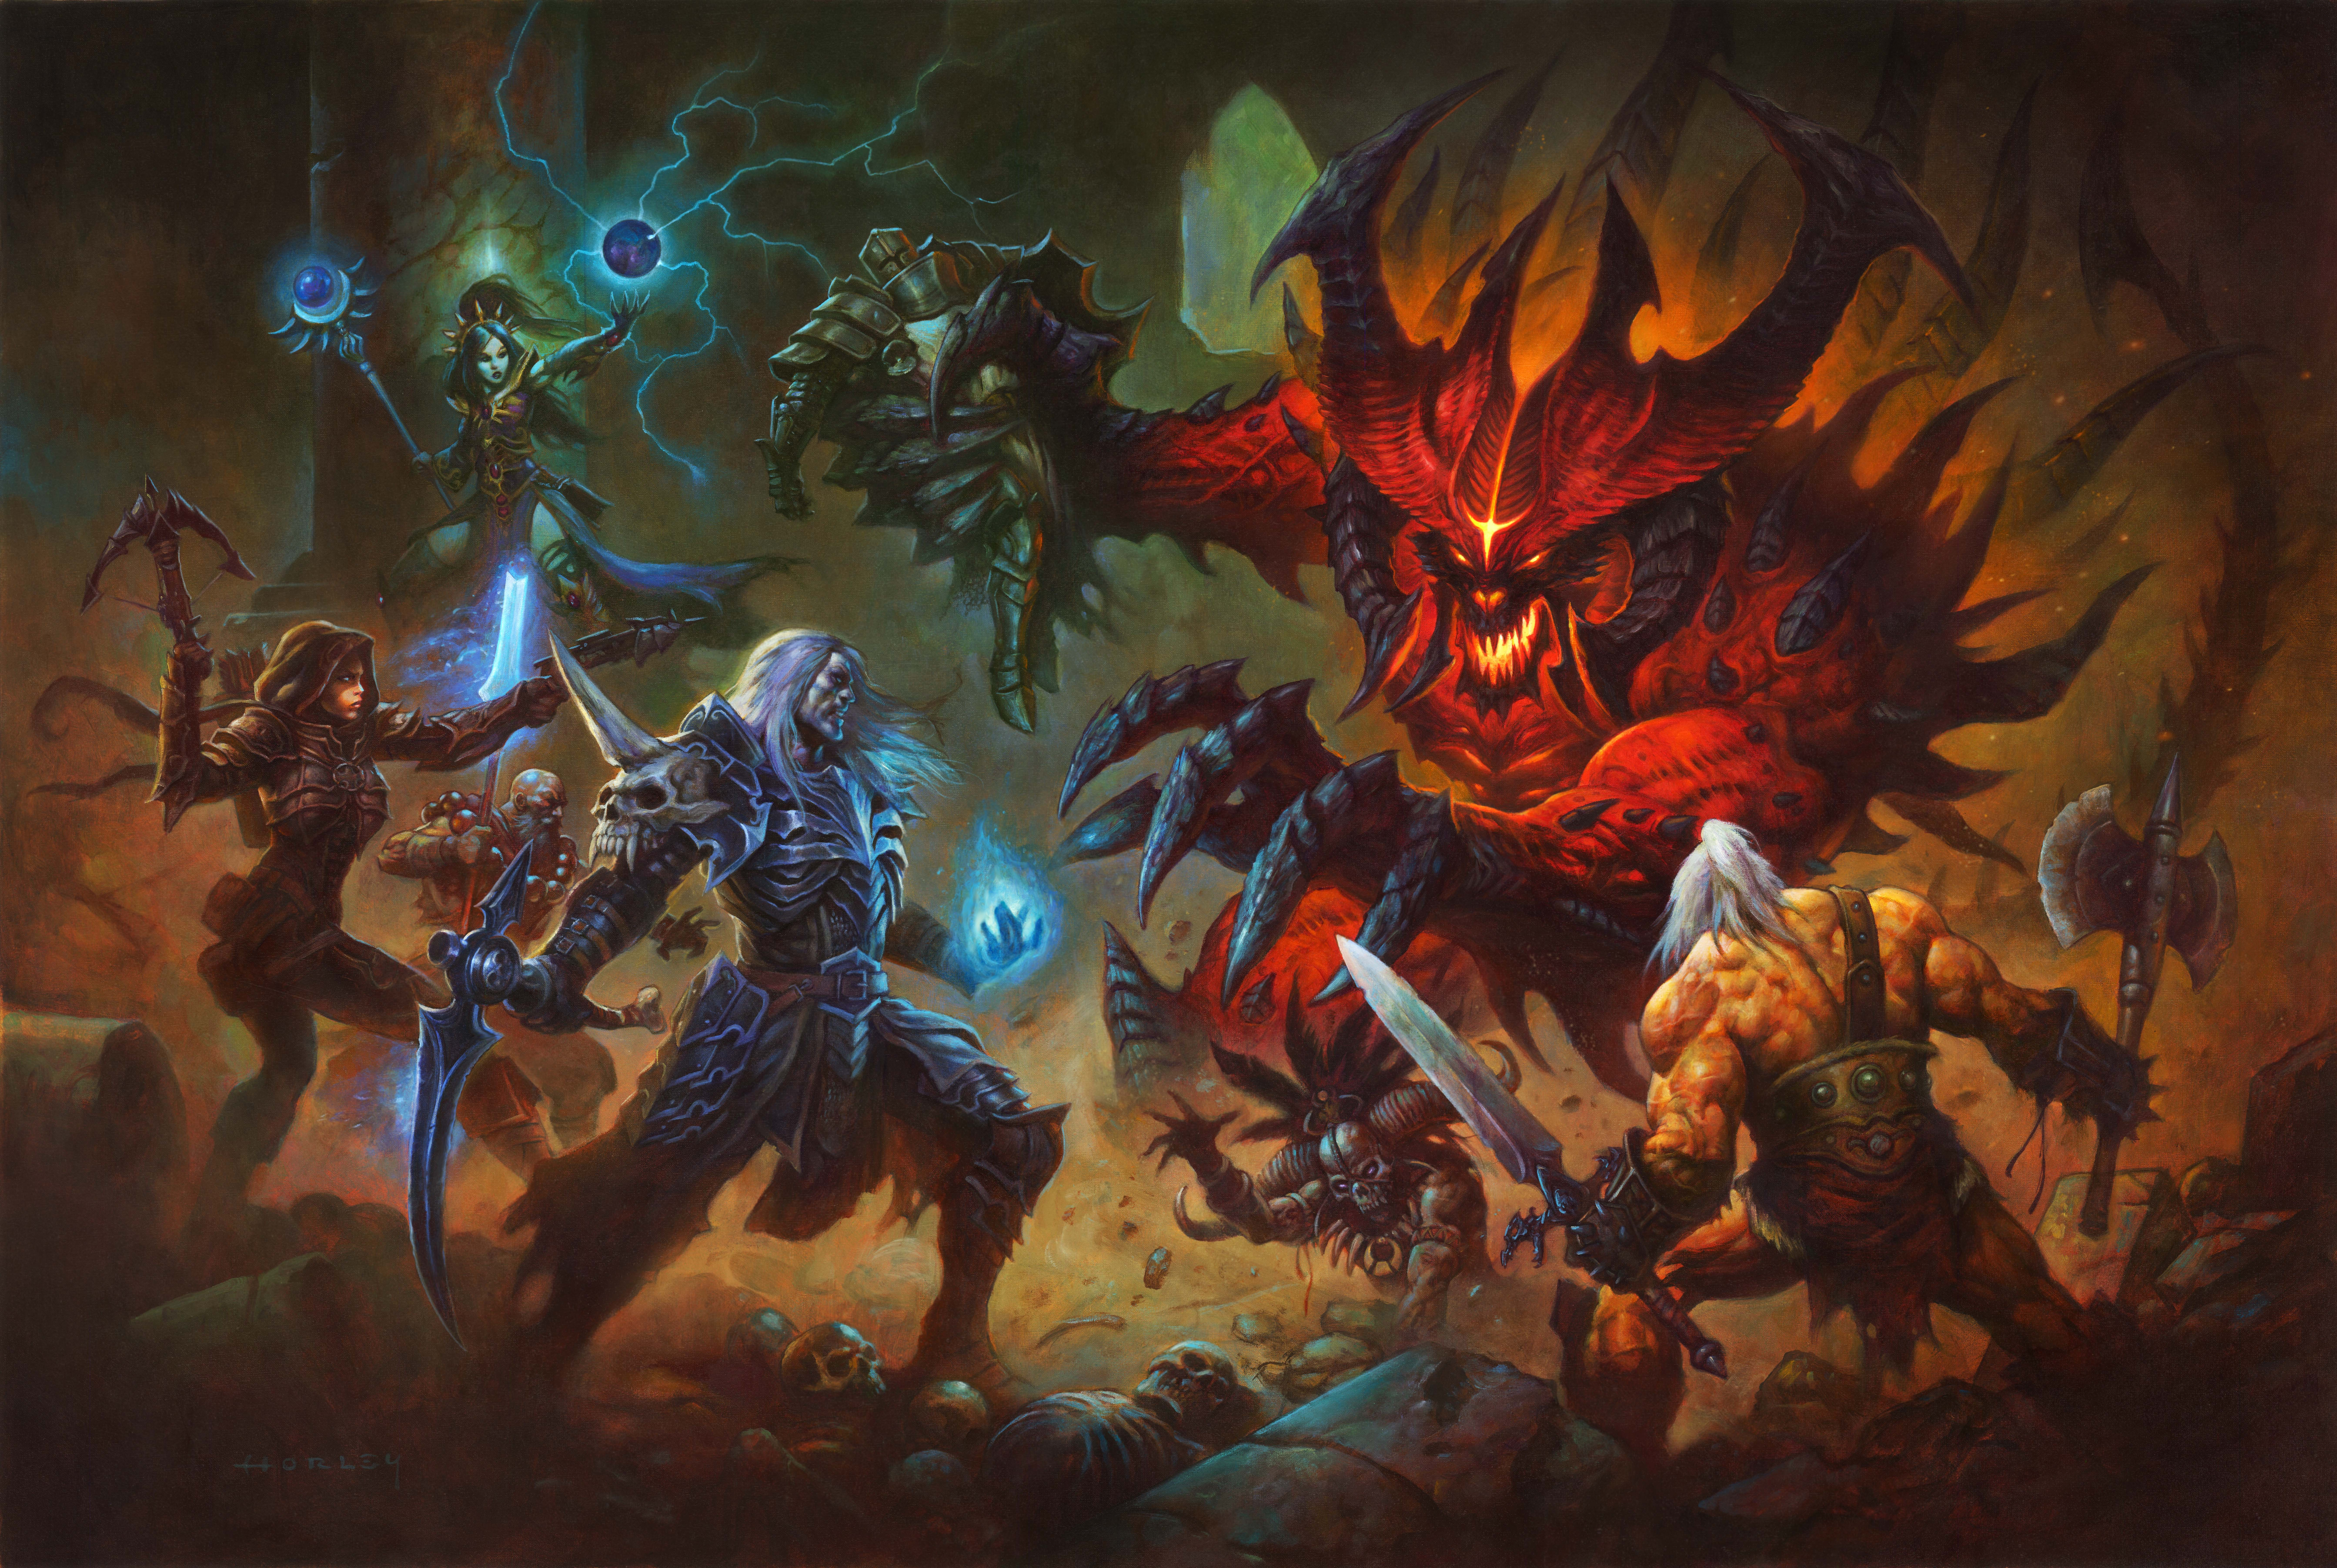 The necromancer rises to join the heroes of Sanctuary in the fight against Diablo. (Graphic: Business Wire)